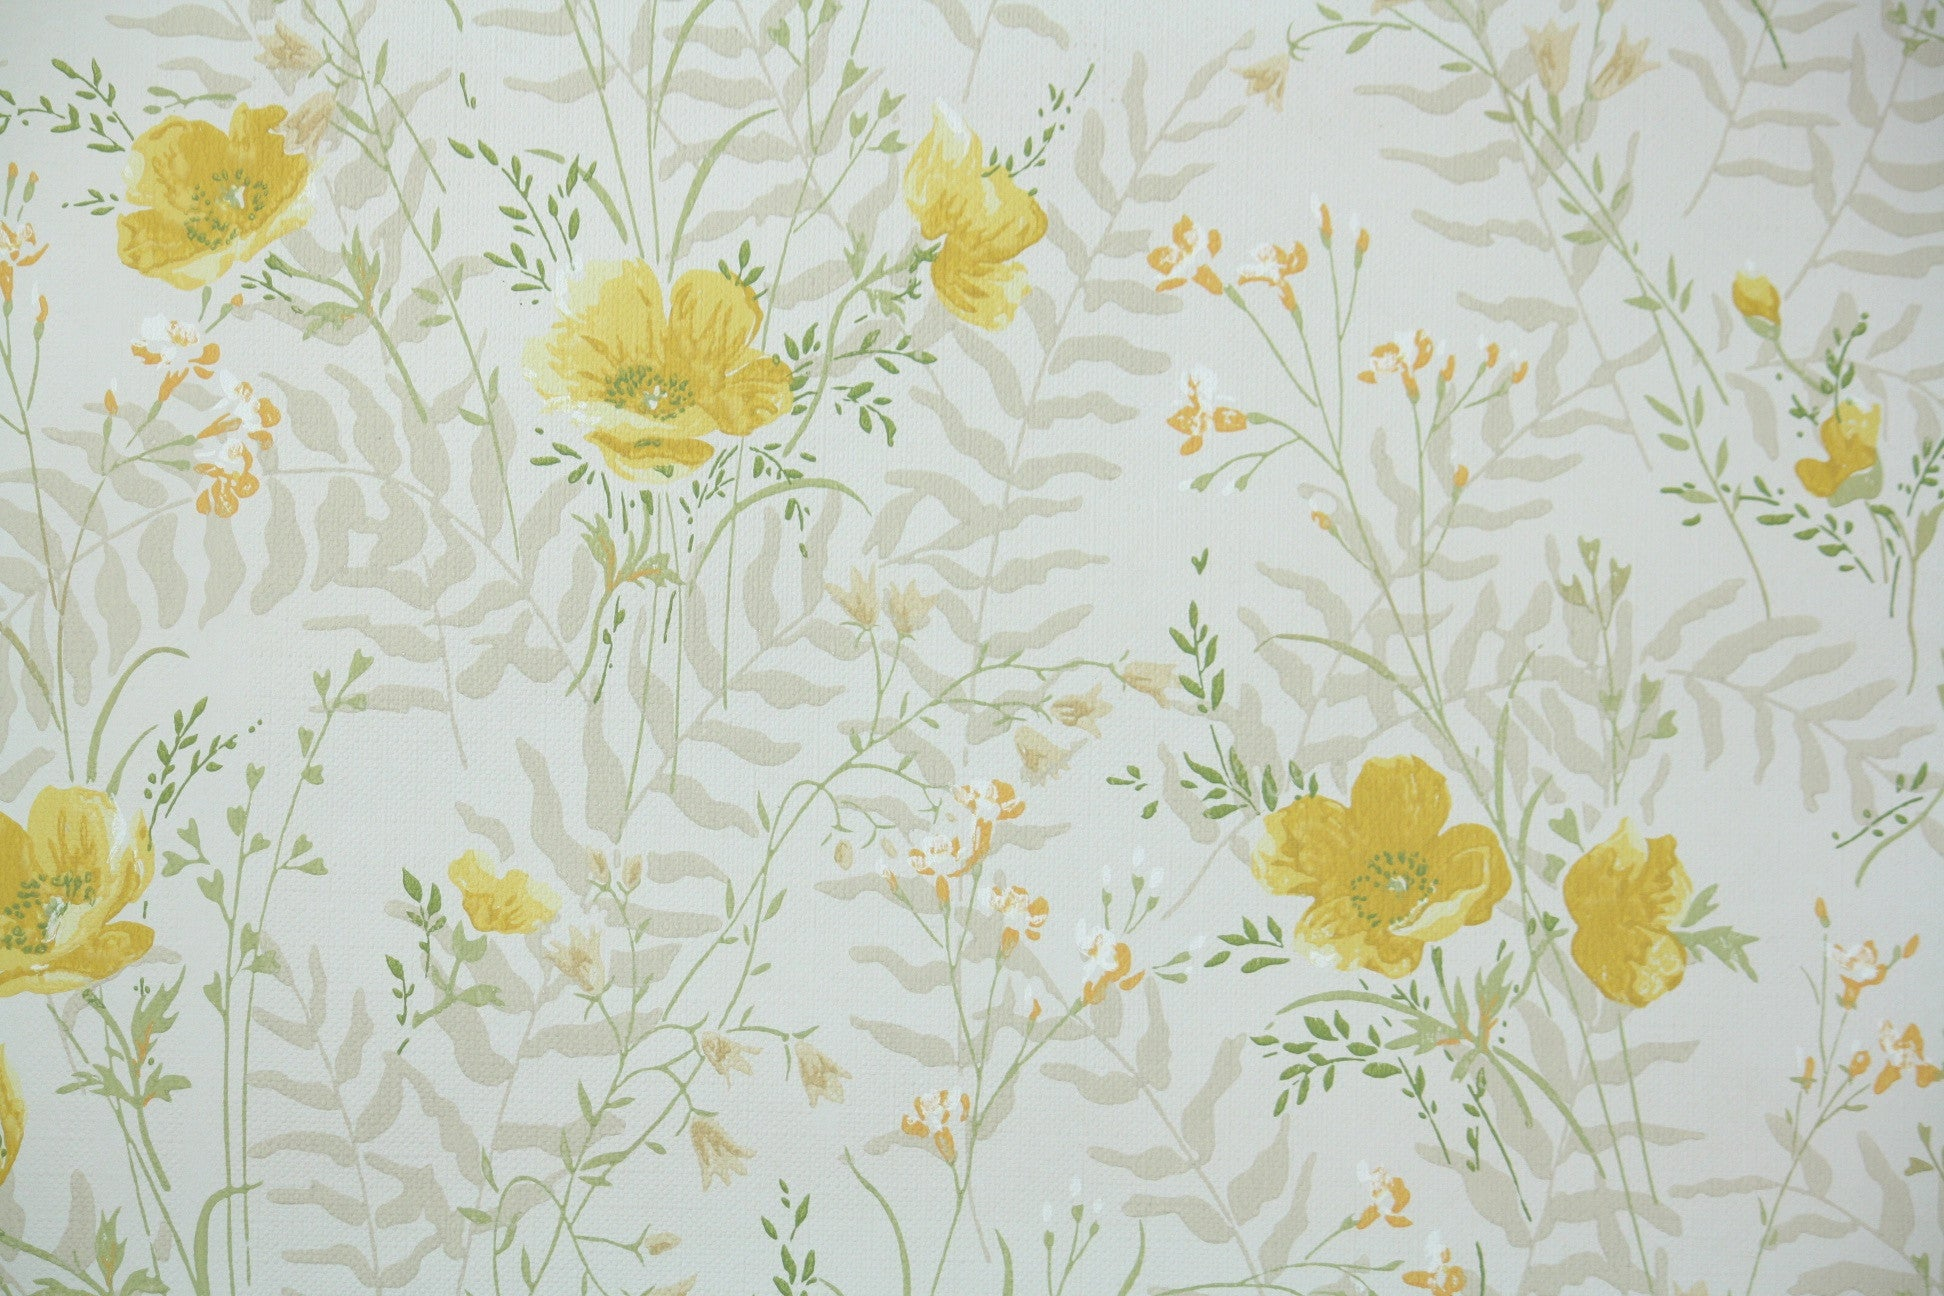 1970s Floral Vintage Wallpaper Hannah S Treasures Vintage Wallpaper